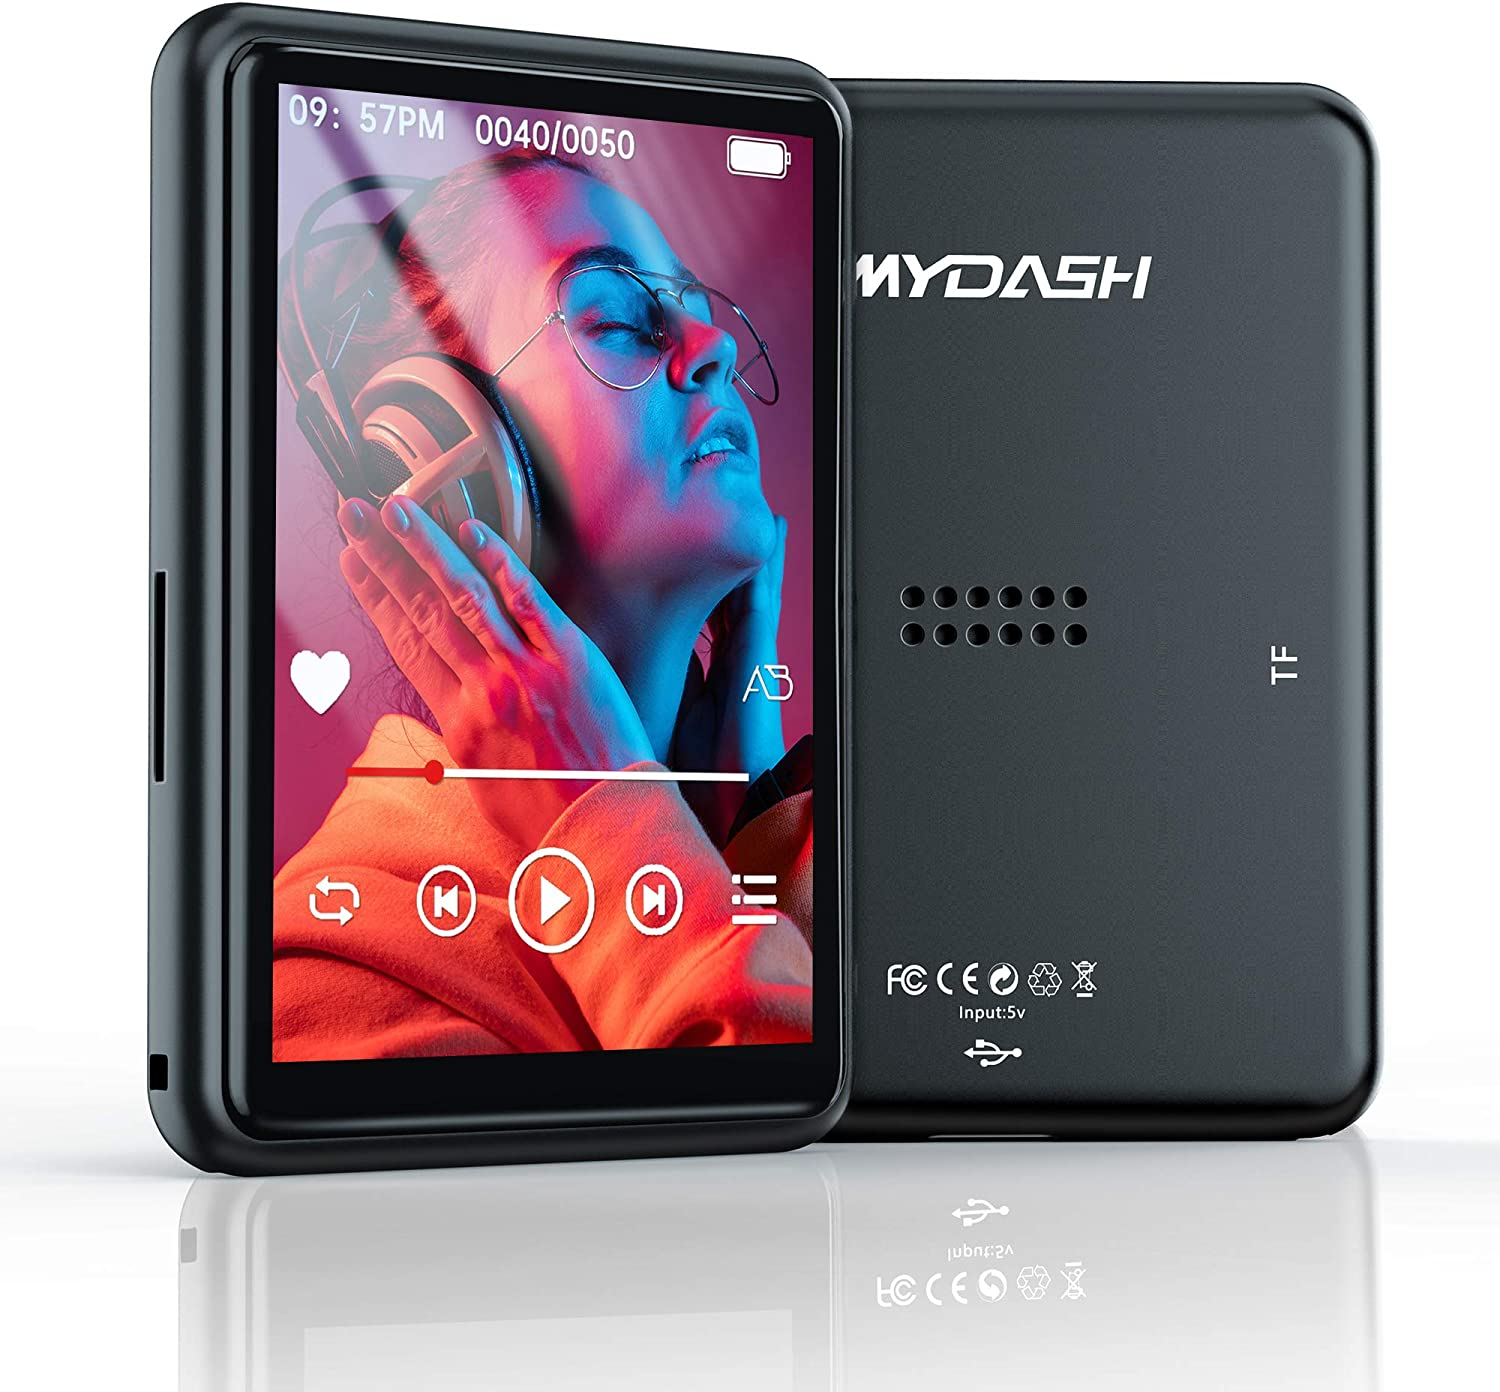 """MP3 Player with Bluetooth,2.4"""" Touch Screen Music Player 16GB Portable MP3 Player with Speakers high Fidelity Lossless Sound MP3 Players FM/Recording/Video Support128(Headphone, Armba)"""